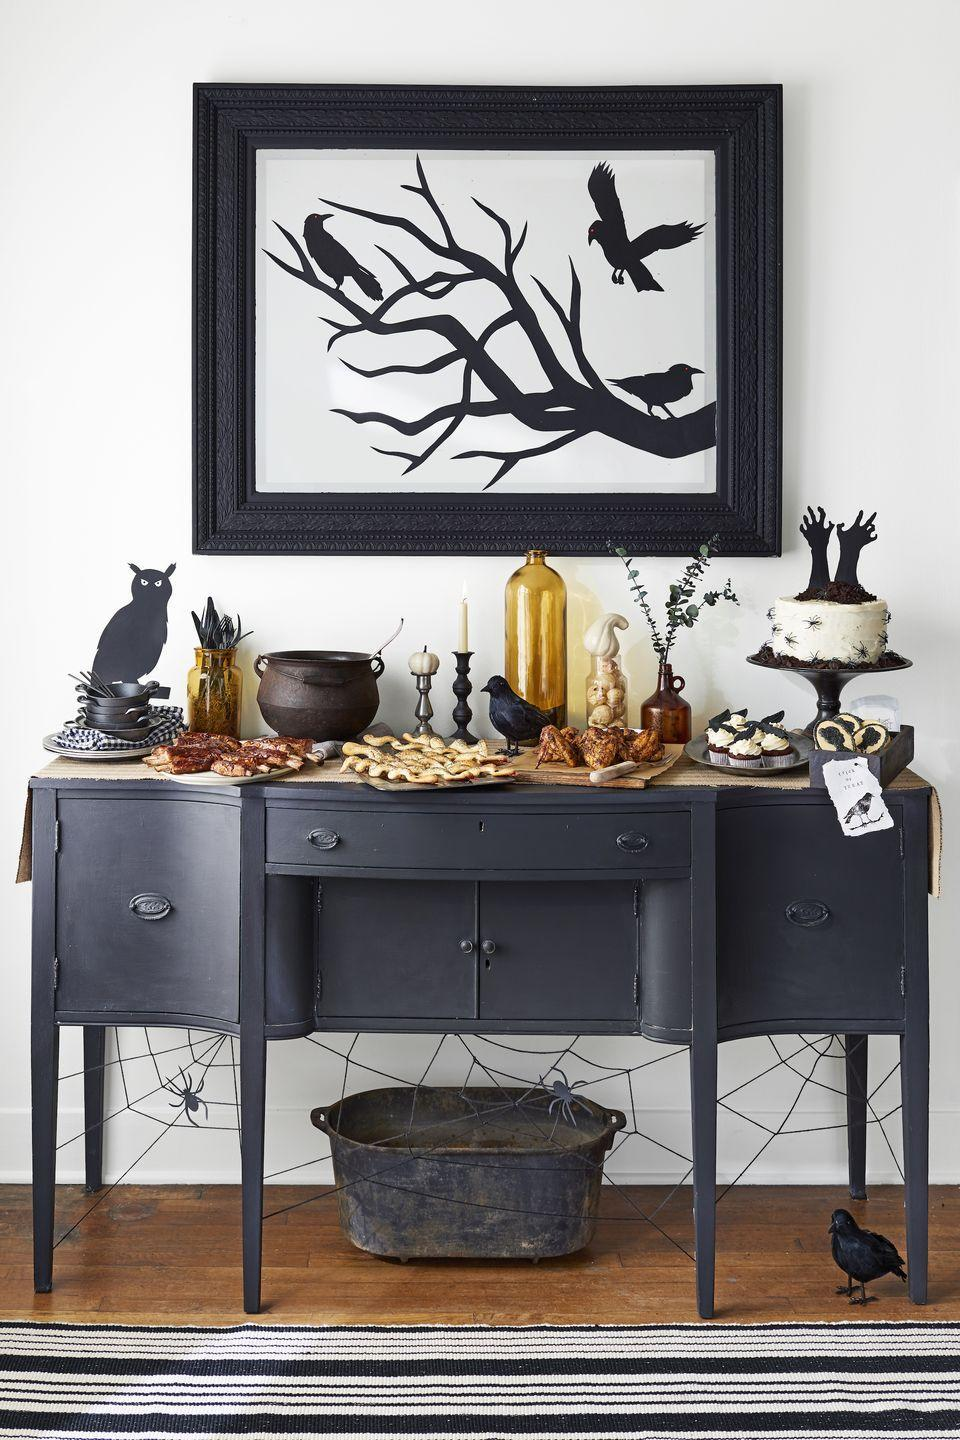 """<p>This shadowy party spread is giving us major Edgar Allen Poe vibes. Snip out branches and birds from black paper and adhere to a mirror or the walls with temporary glue dots.</p><p><em><a href=""""https://www.countryliving.com/entertaining/g271/halloween-decorating-1005"""" rel=""""nofollow noopener"""" target=""""_blank"""" data-ylk=""""slk:Get the tutorial at Country Living »"""" class=""""link rapid-noclick-resp"""">Get the tutorial at Country Living »</a></em> </p>"""